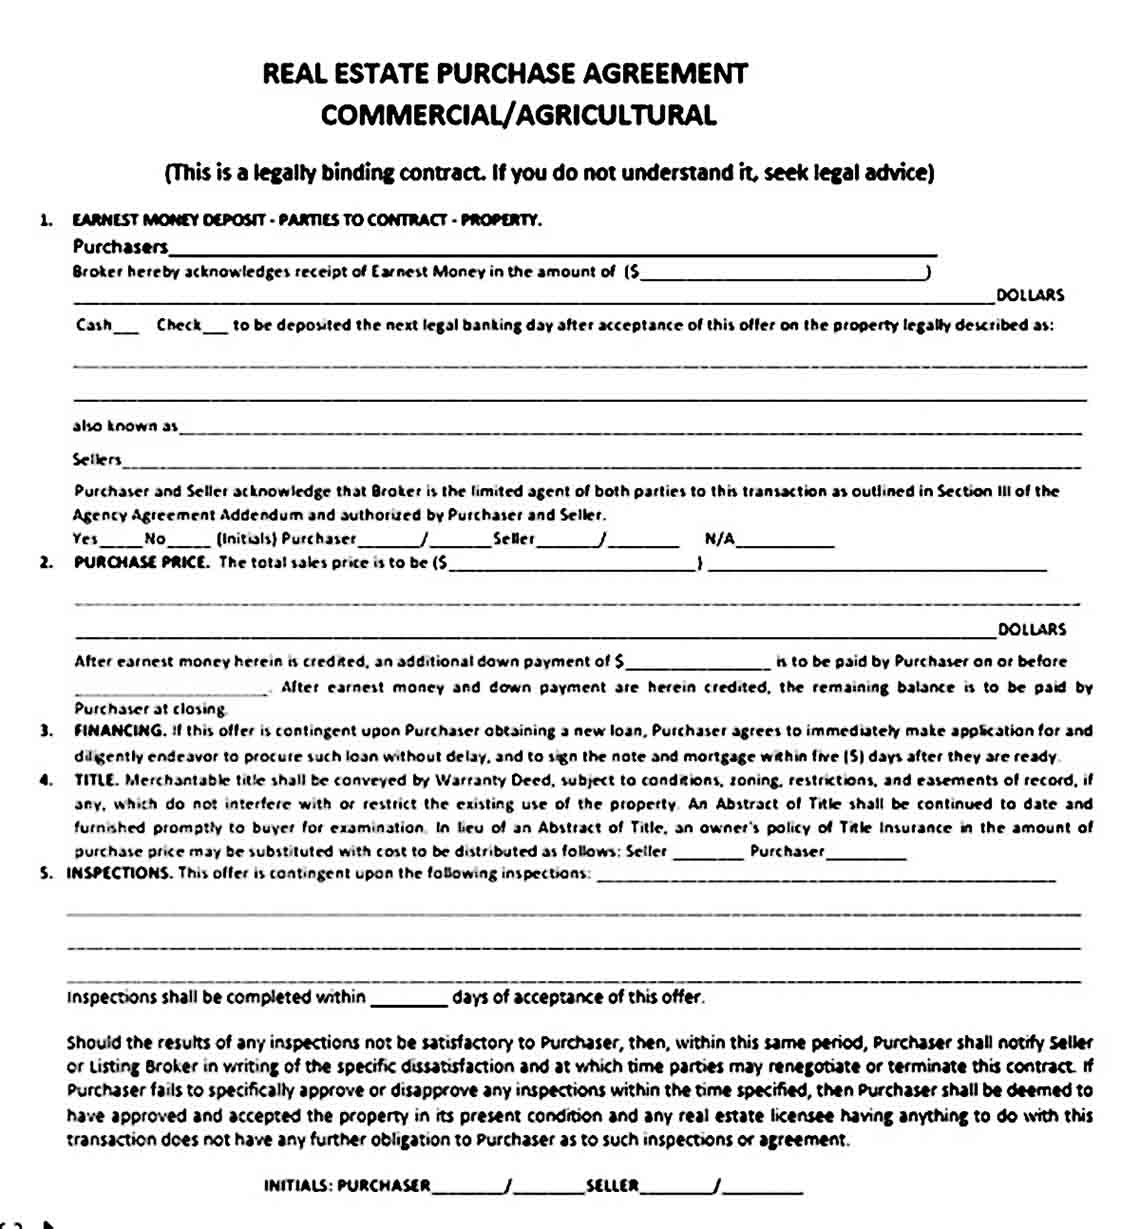 Commercial Real Estate Purchase Agreement